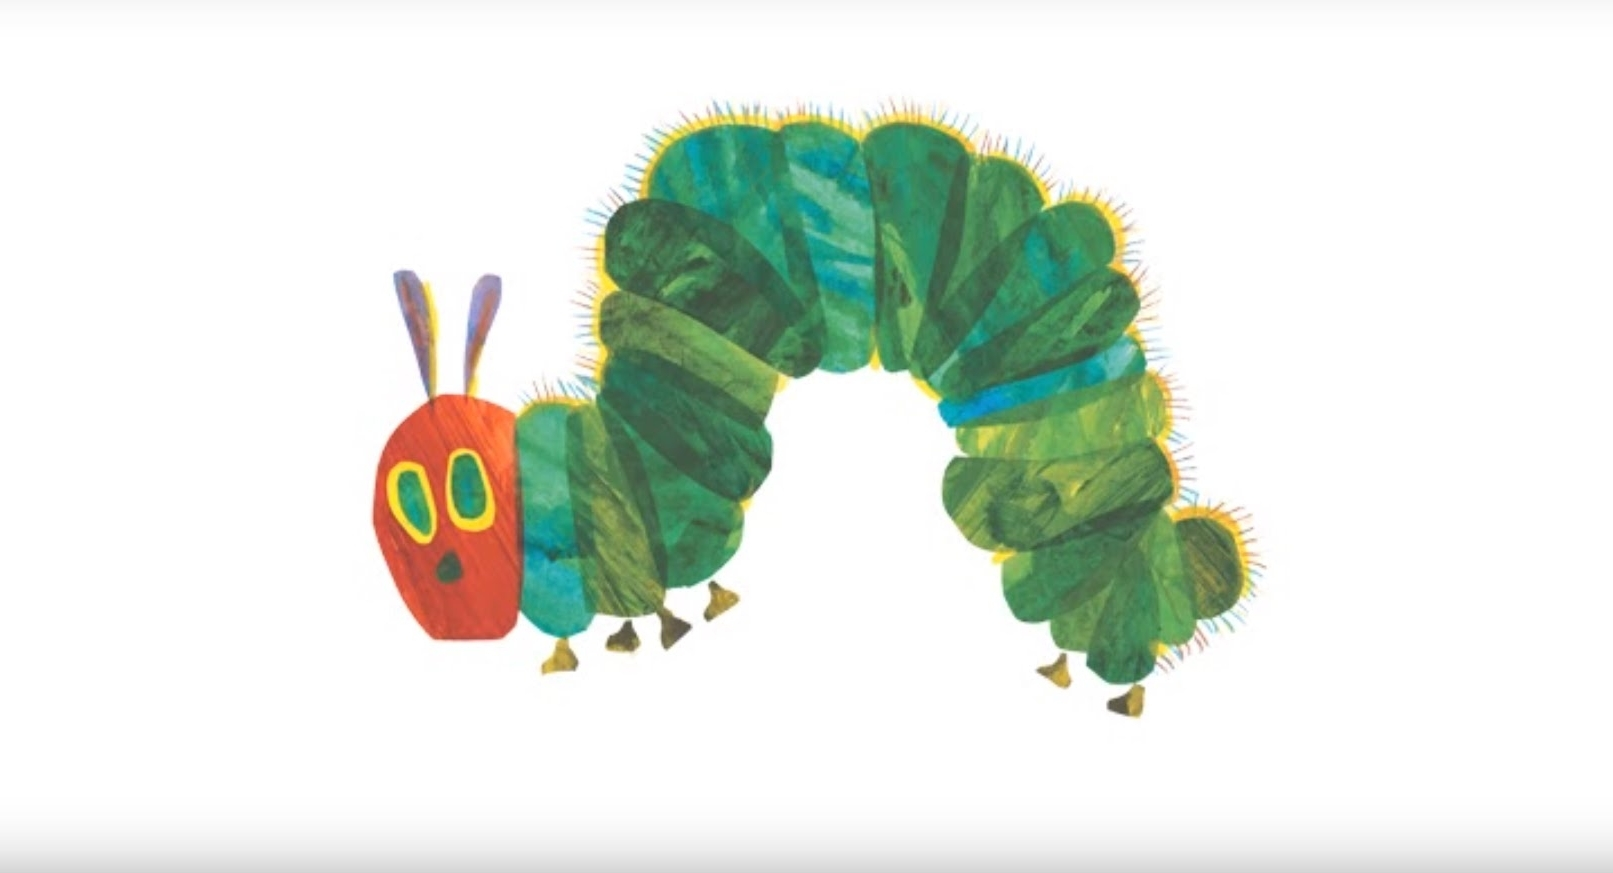 Eric Carle Wall Art Pertaining To Well Known Eric Carle's The Very Hungry Caterpillar Wall Decals – Youtube (View 7 of 15)